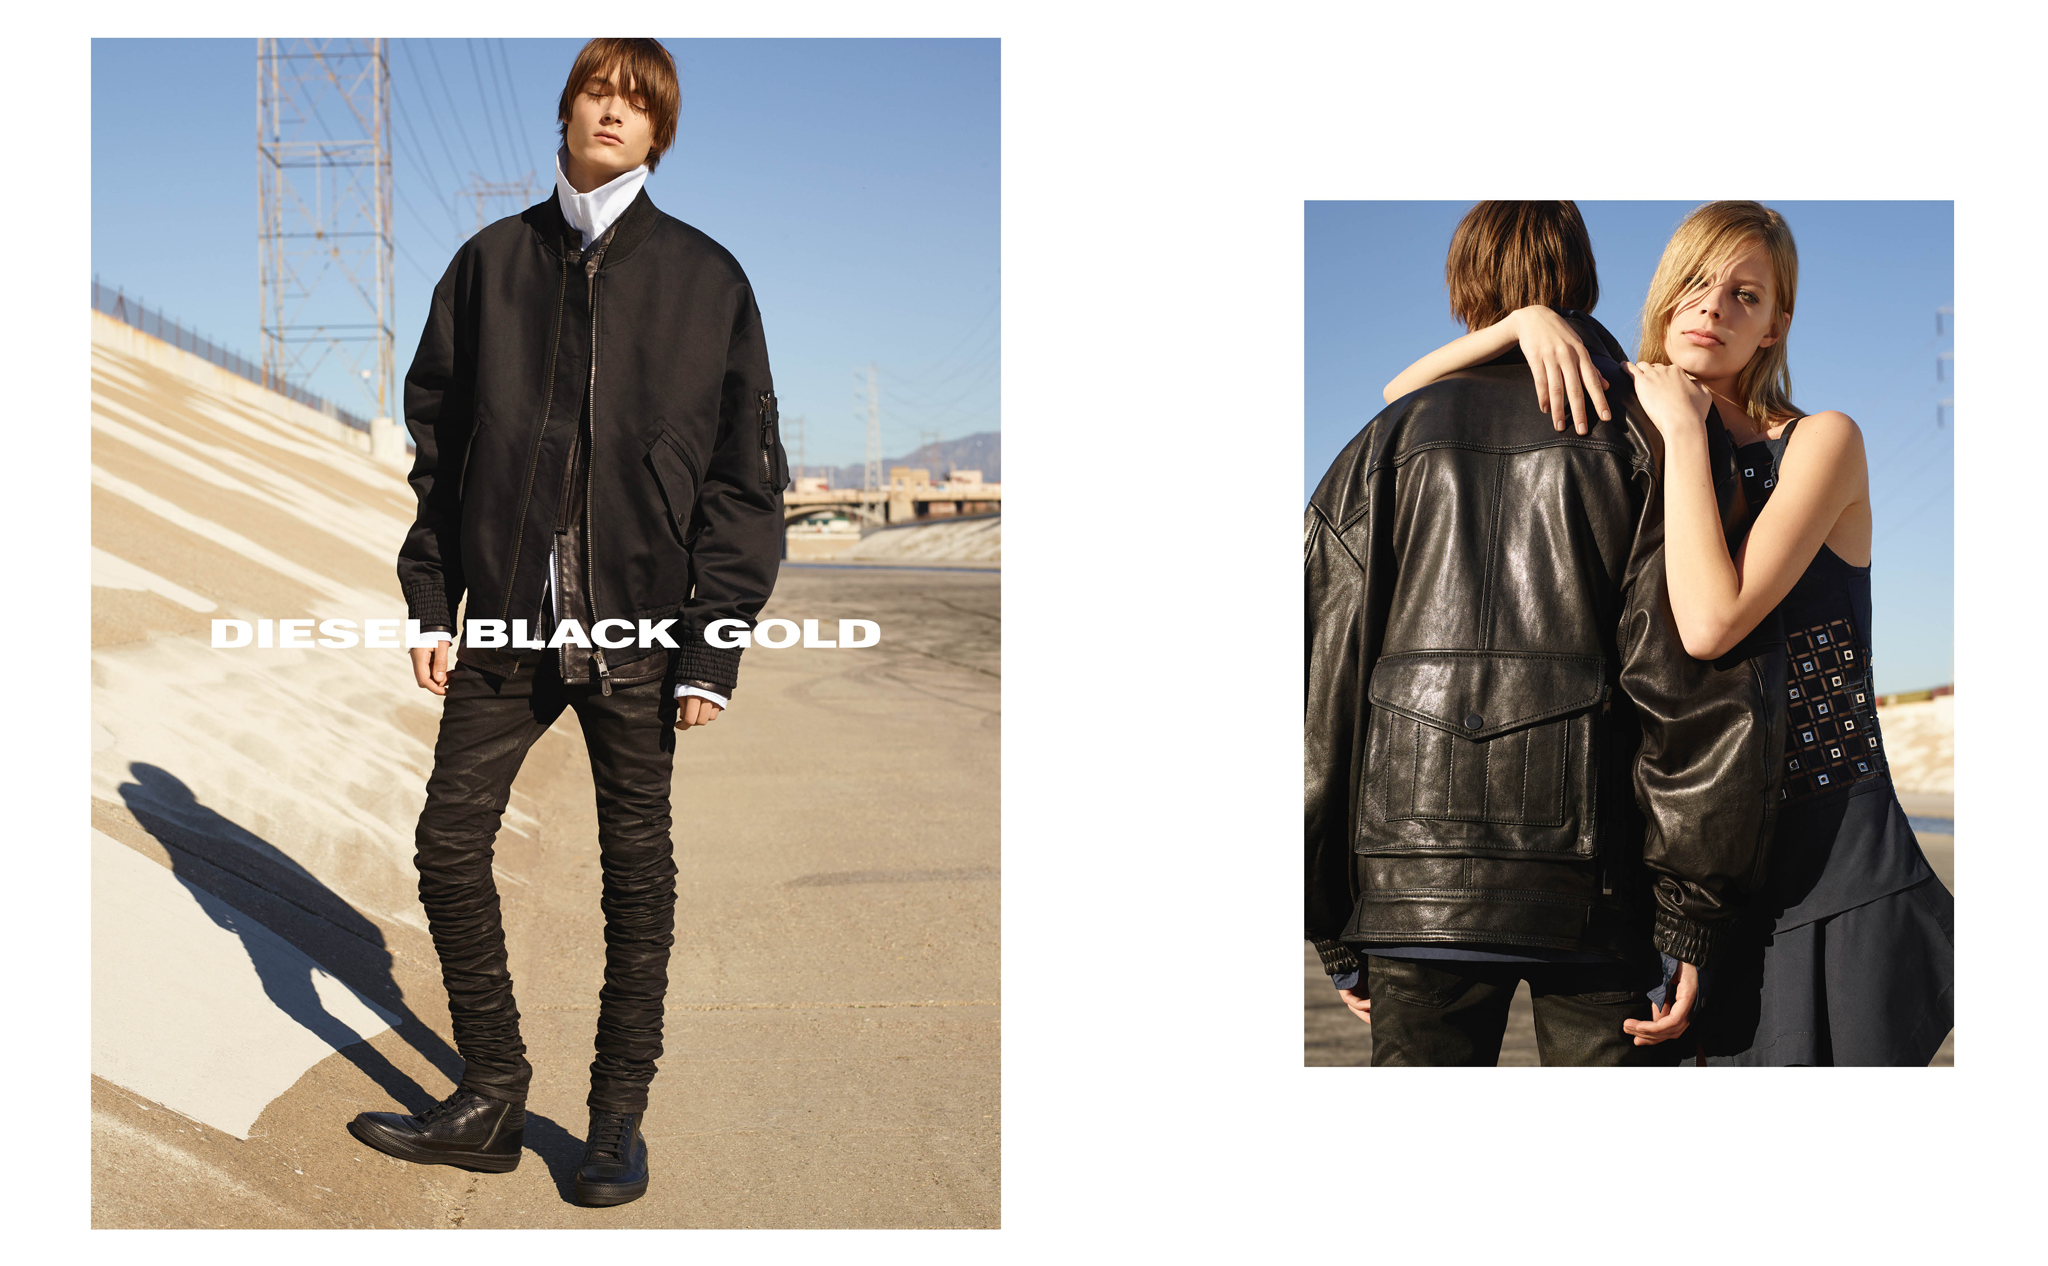 A visual from the Diesel Black Gold spring '16 ad campaign.